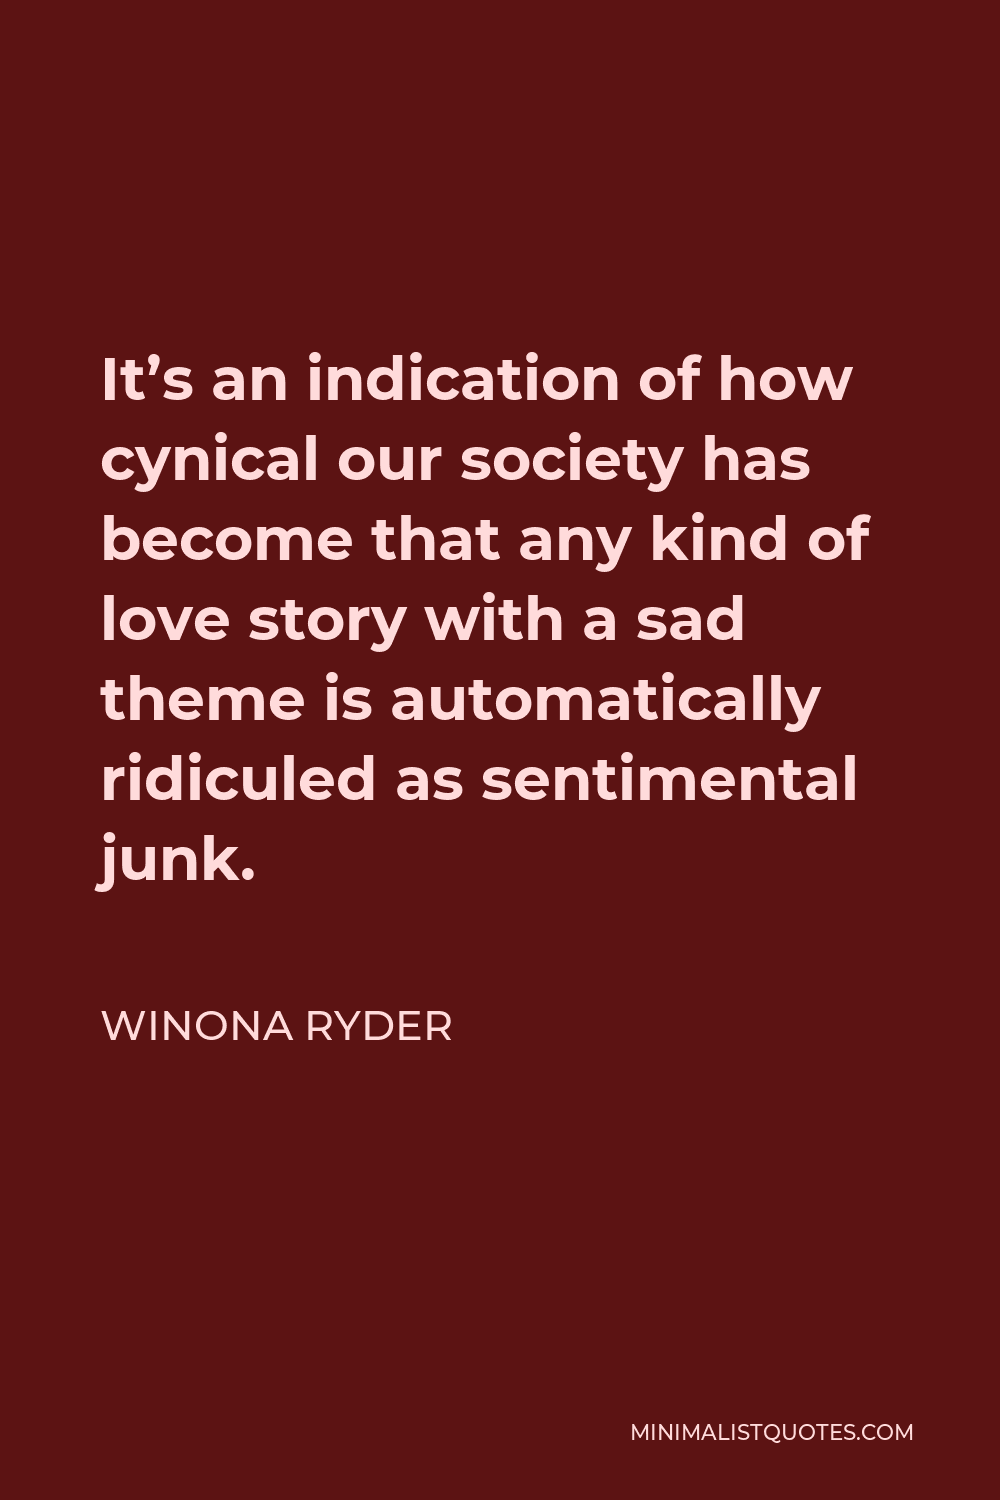 Winona Ryder Quote - It's an indication of how cynical our society has become that any kind of love story with a sad theme is automatically ridiculed as sentimental junk.